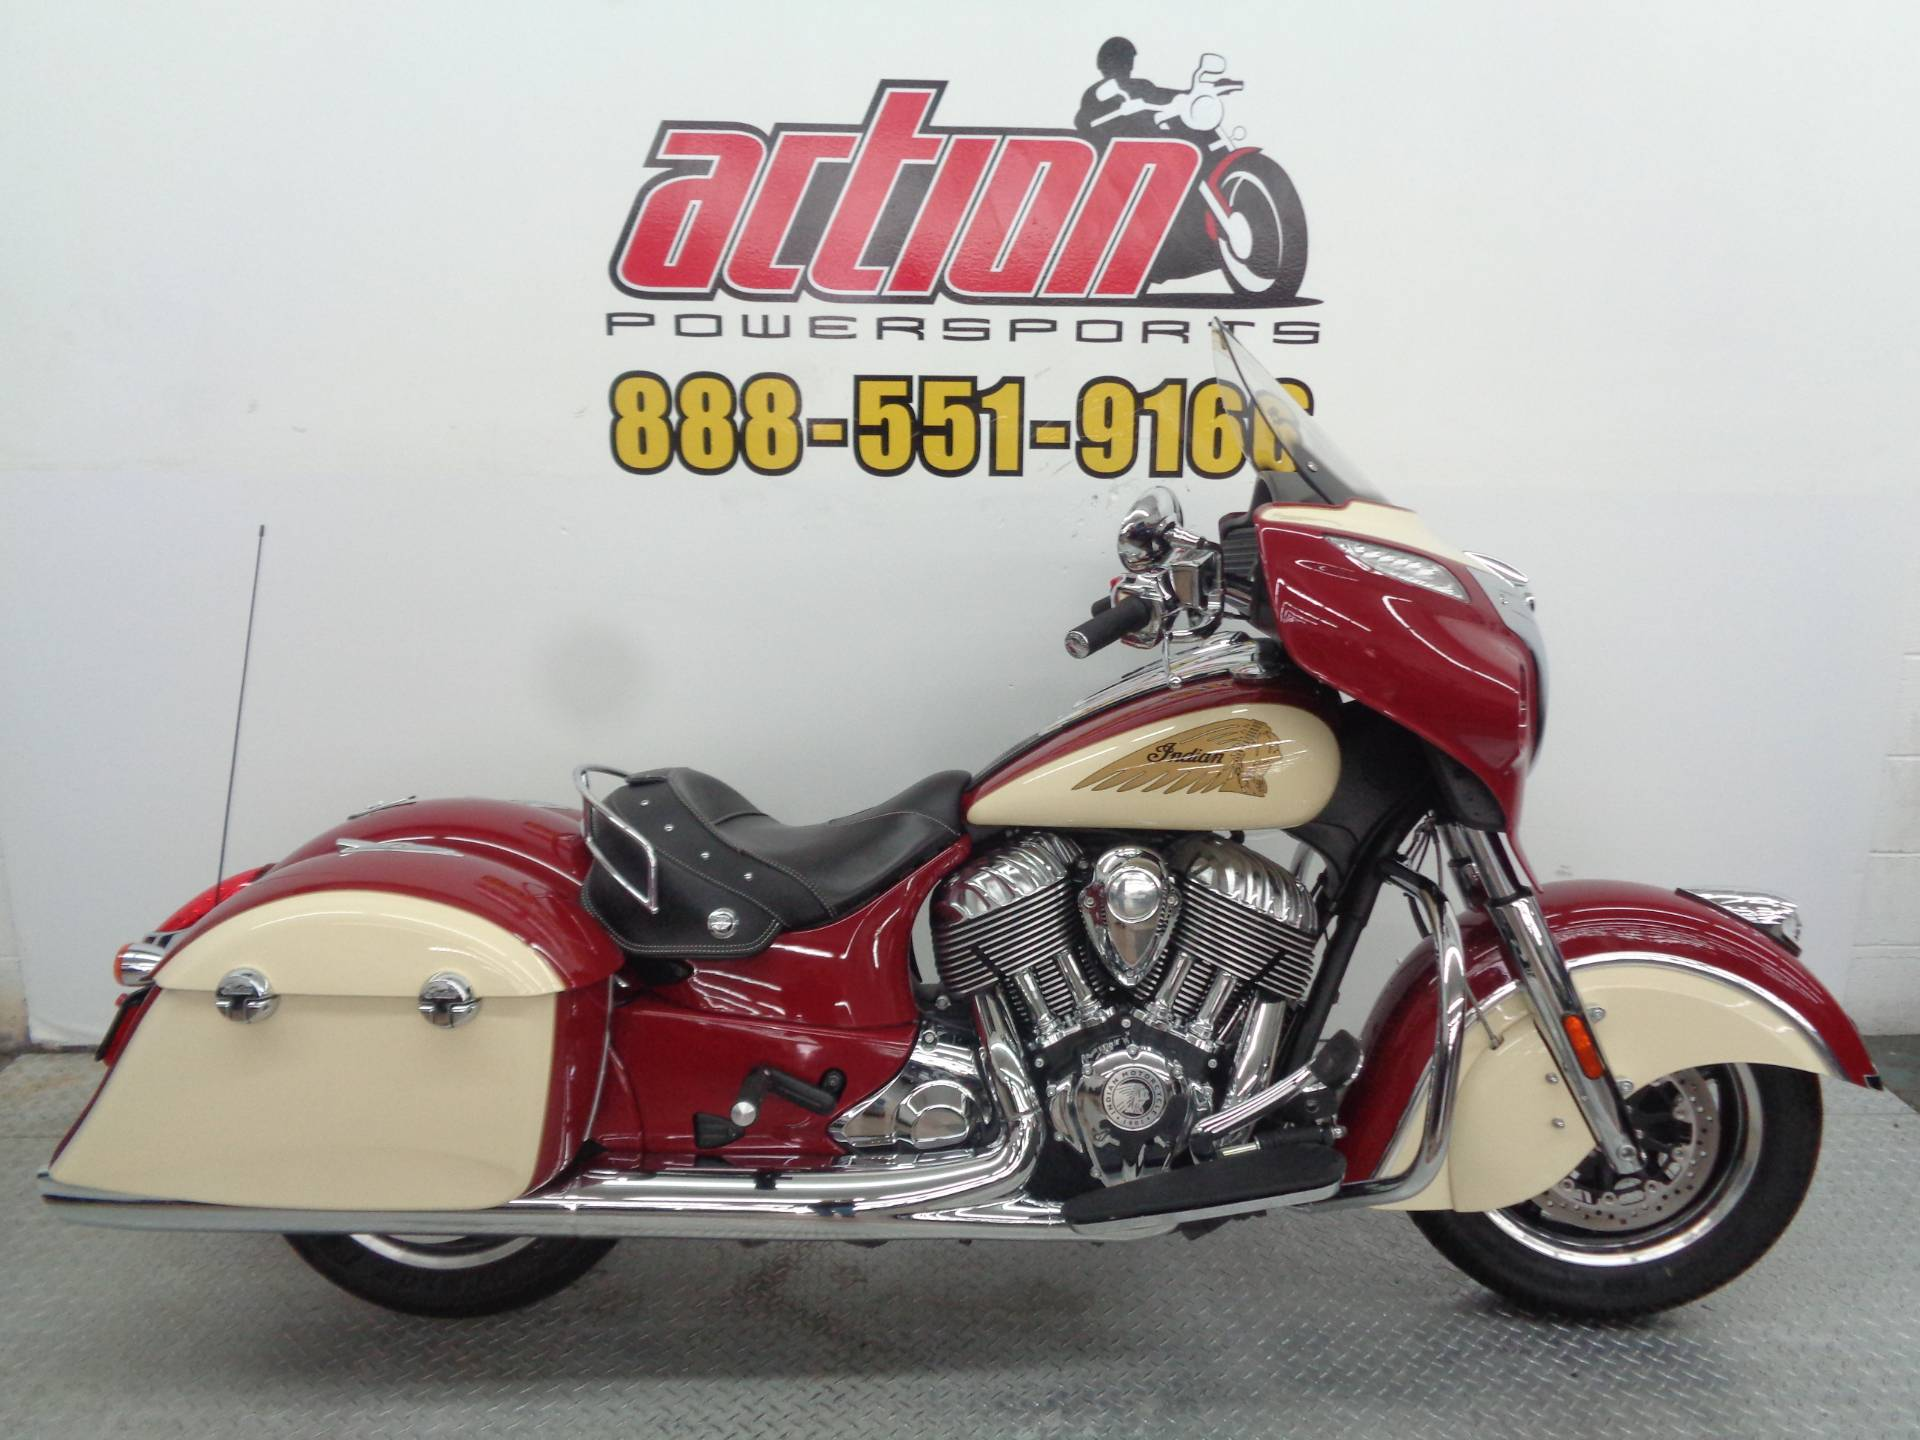 2015 Indian Chieftain for sale 2750